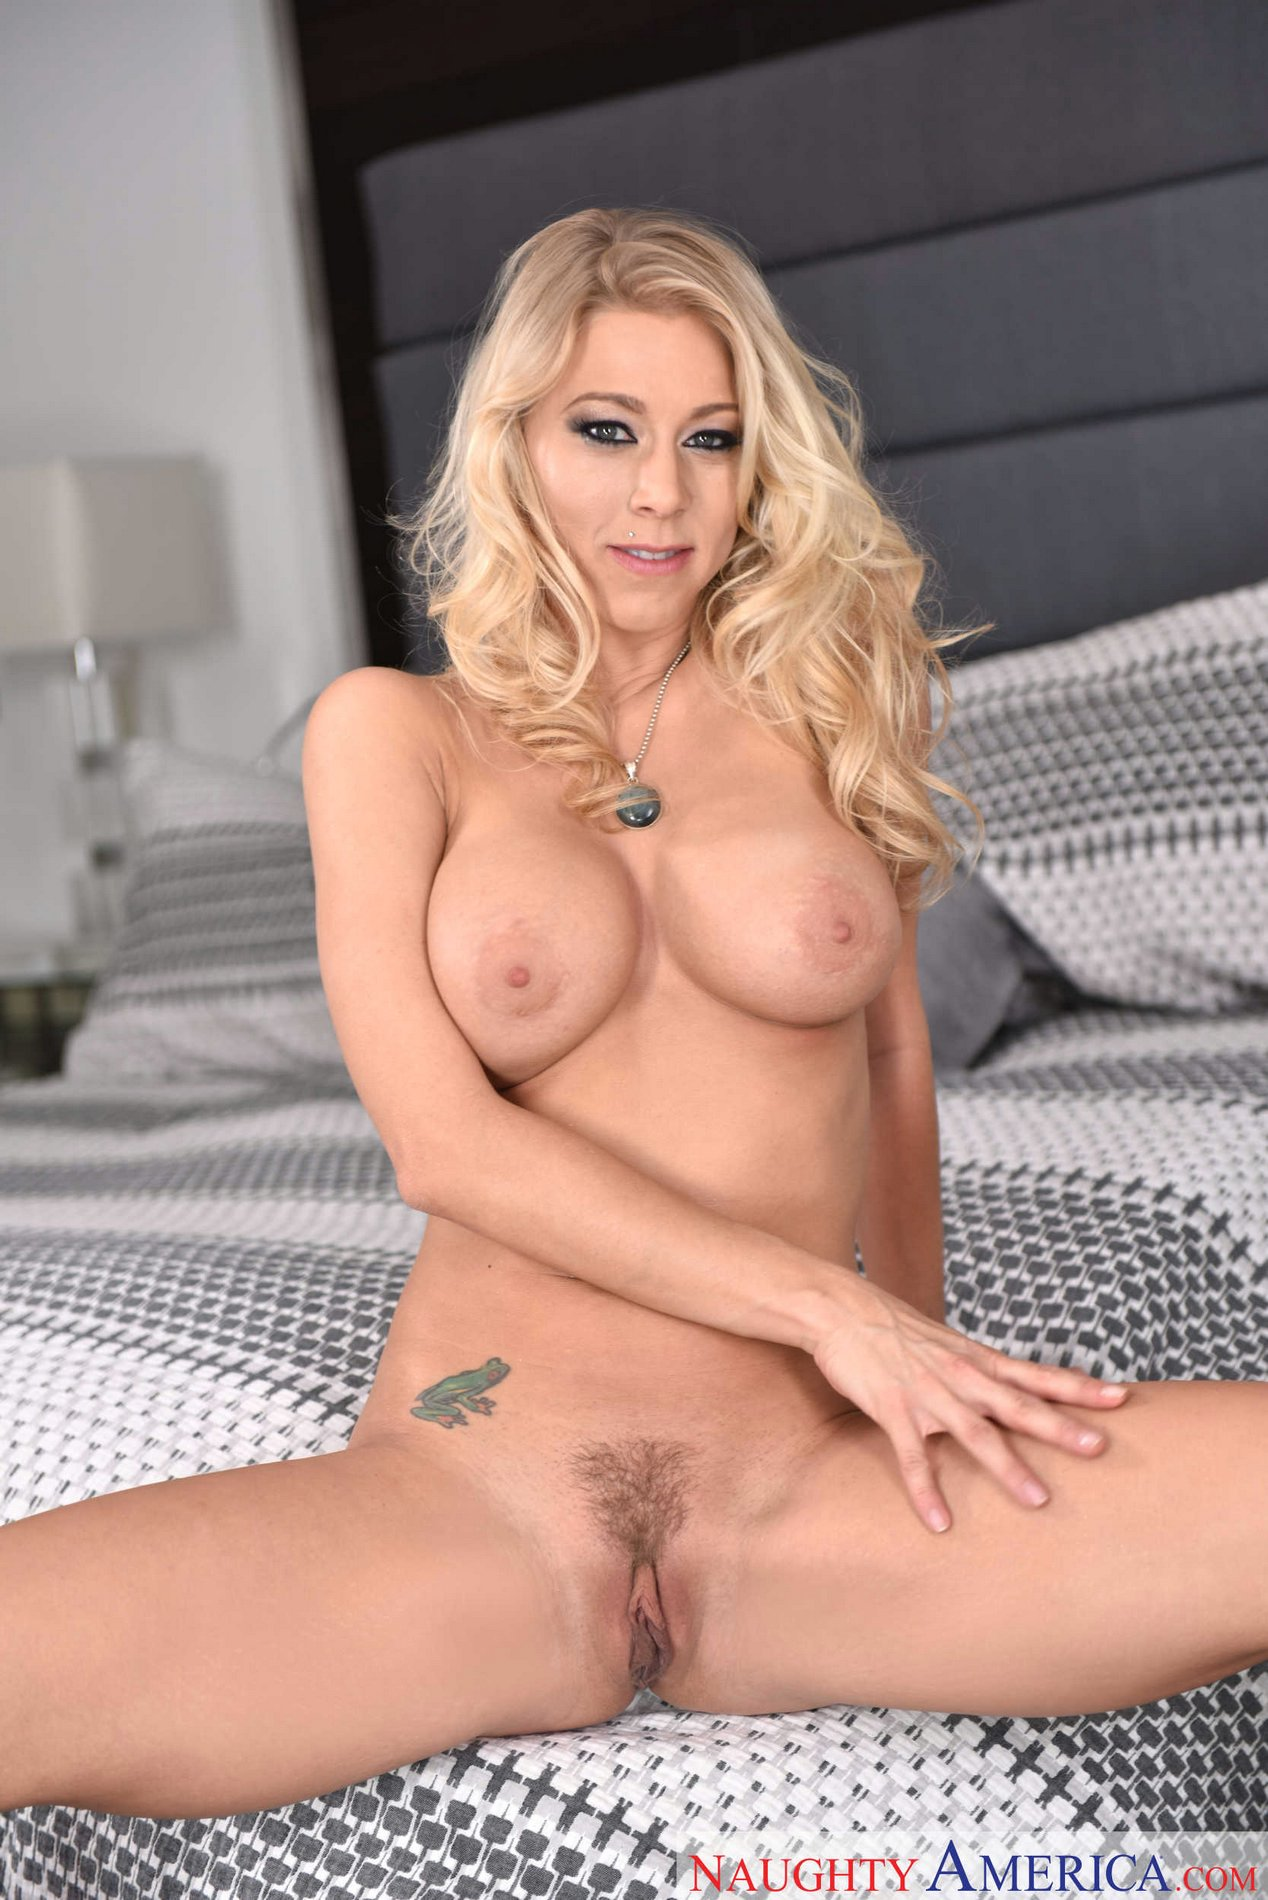 Katie morgan that sex show